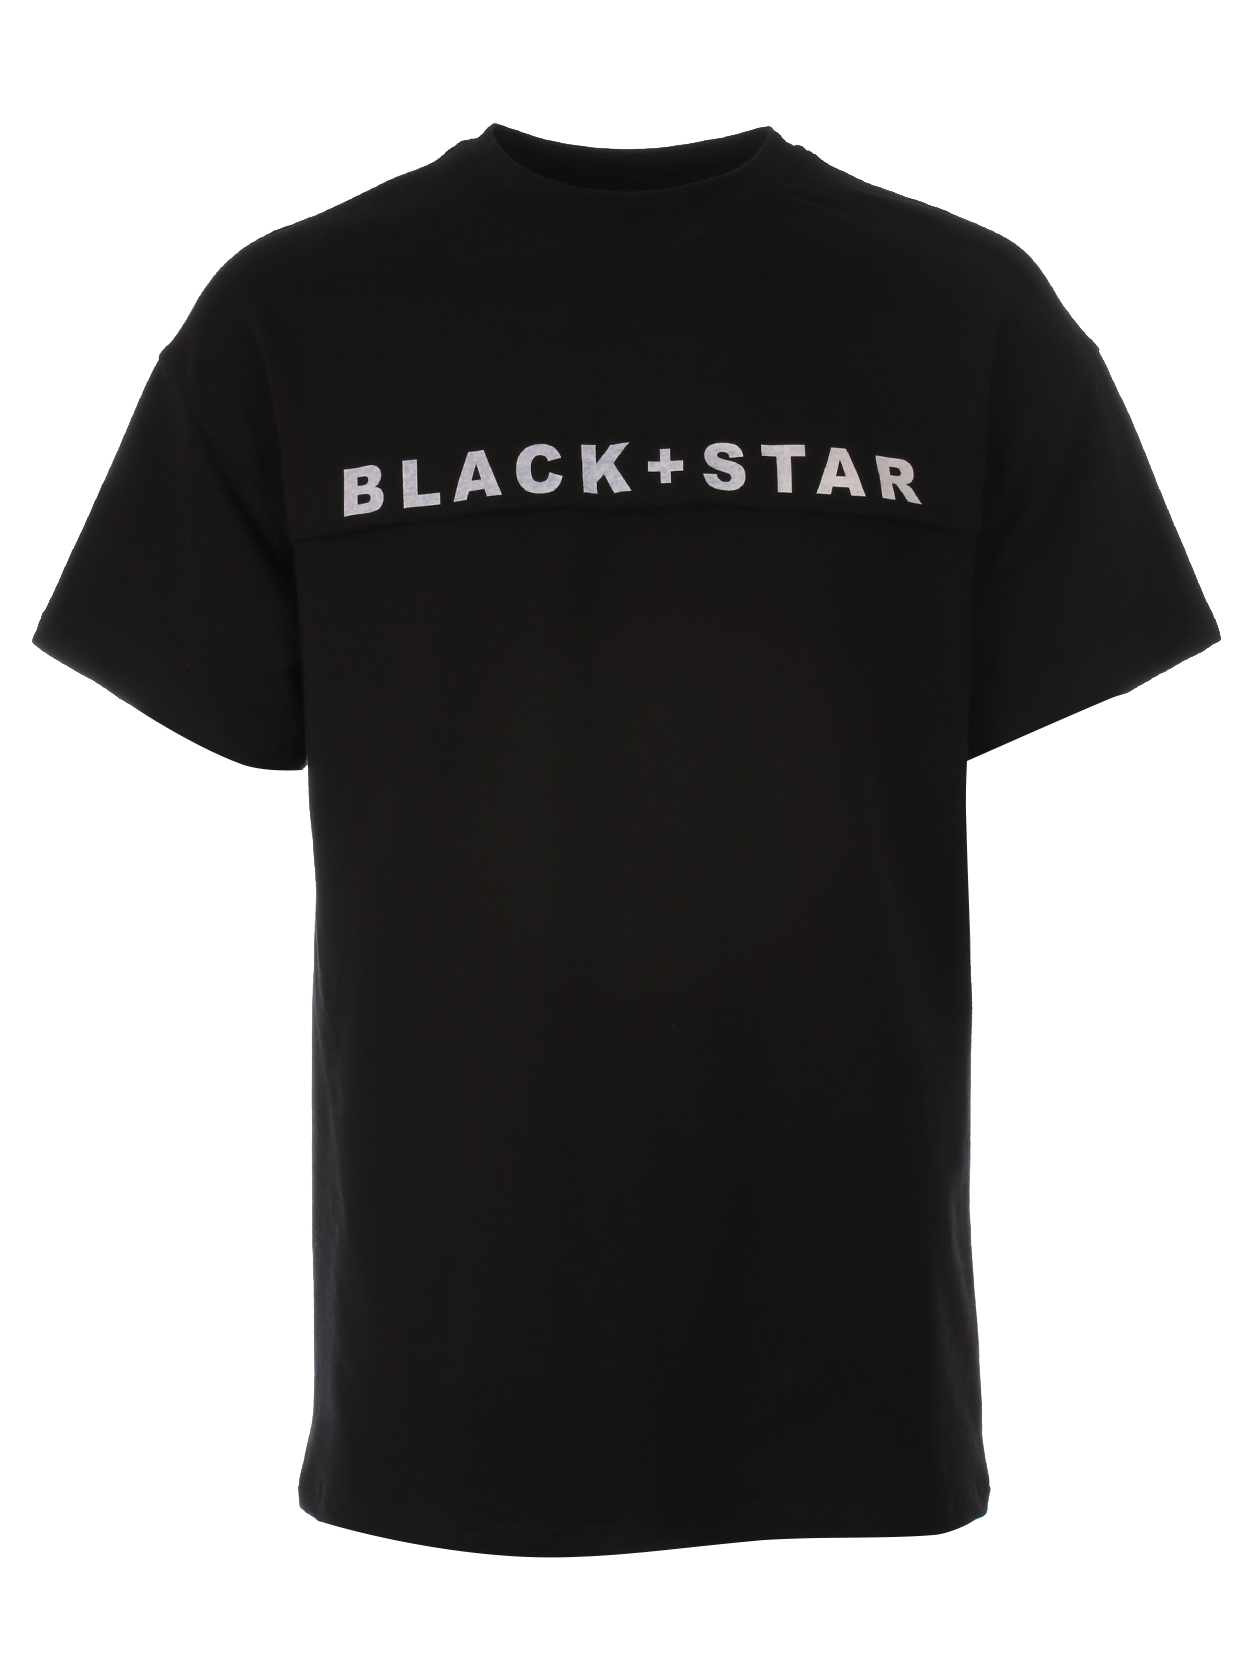 Mens t-shirt BLACK + STARMens basic t-shirt by Black Star Wear. Loose fit, round neck. High quality cotton tissue to give you maximum comfort, this t-shirt will become one of you favorite basic garments. Decorative element with Black Star print on the chest. Availiable in black and beige.<br><br>size: M<br>color: Black<br>gender: male